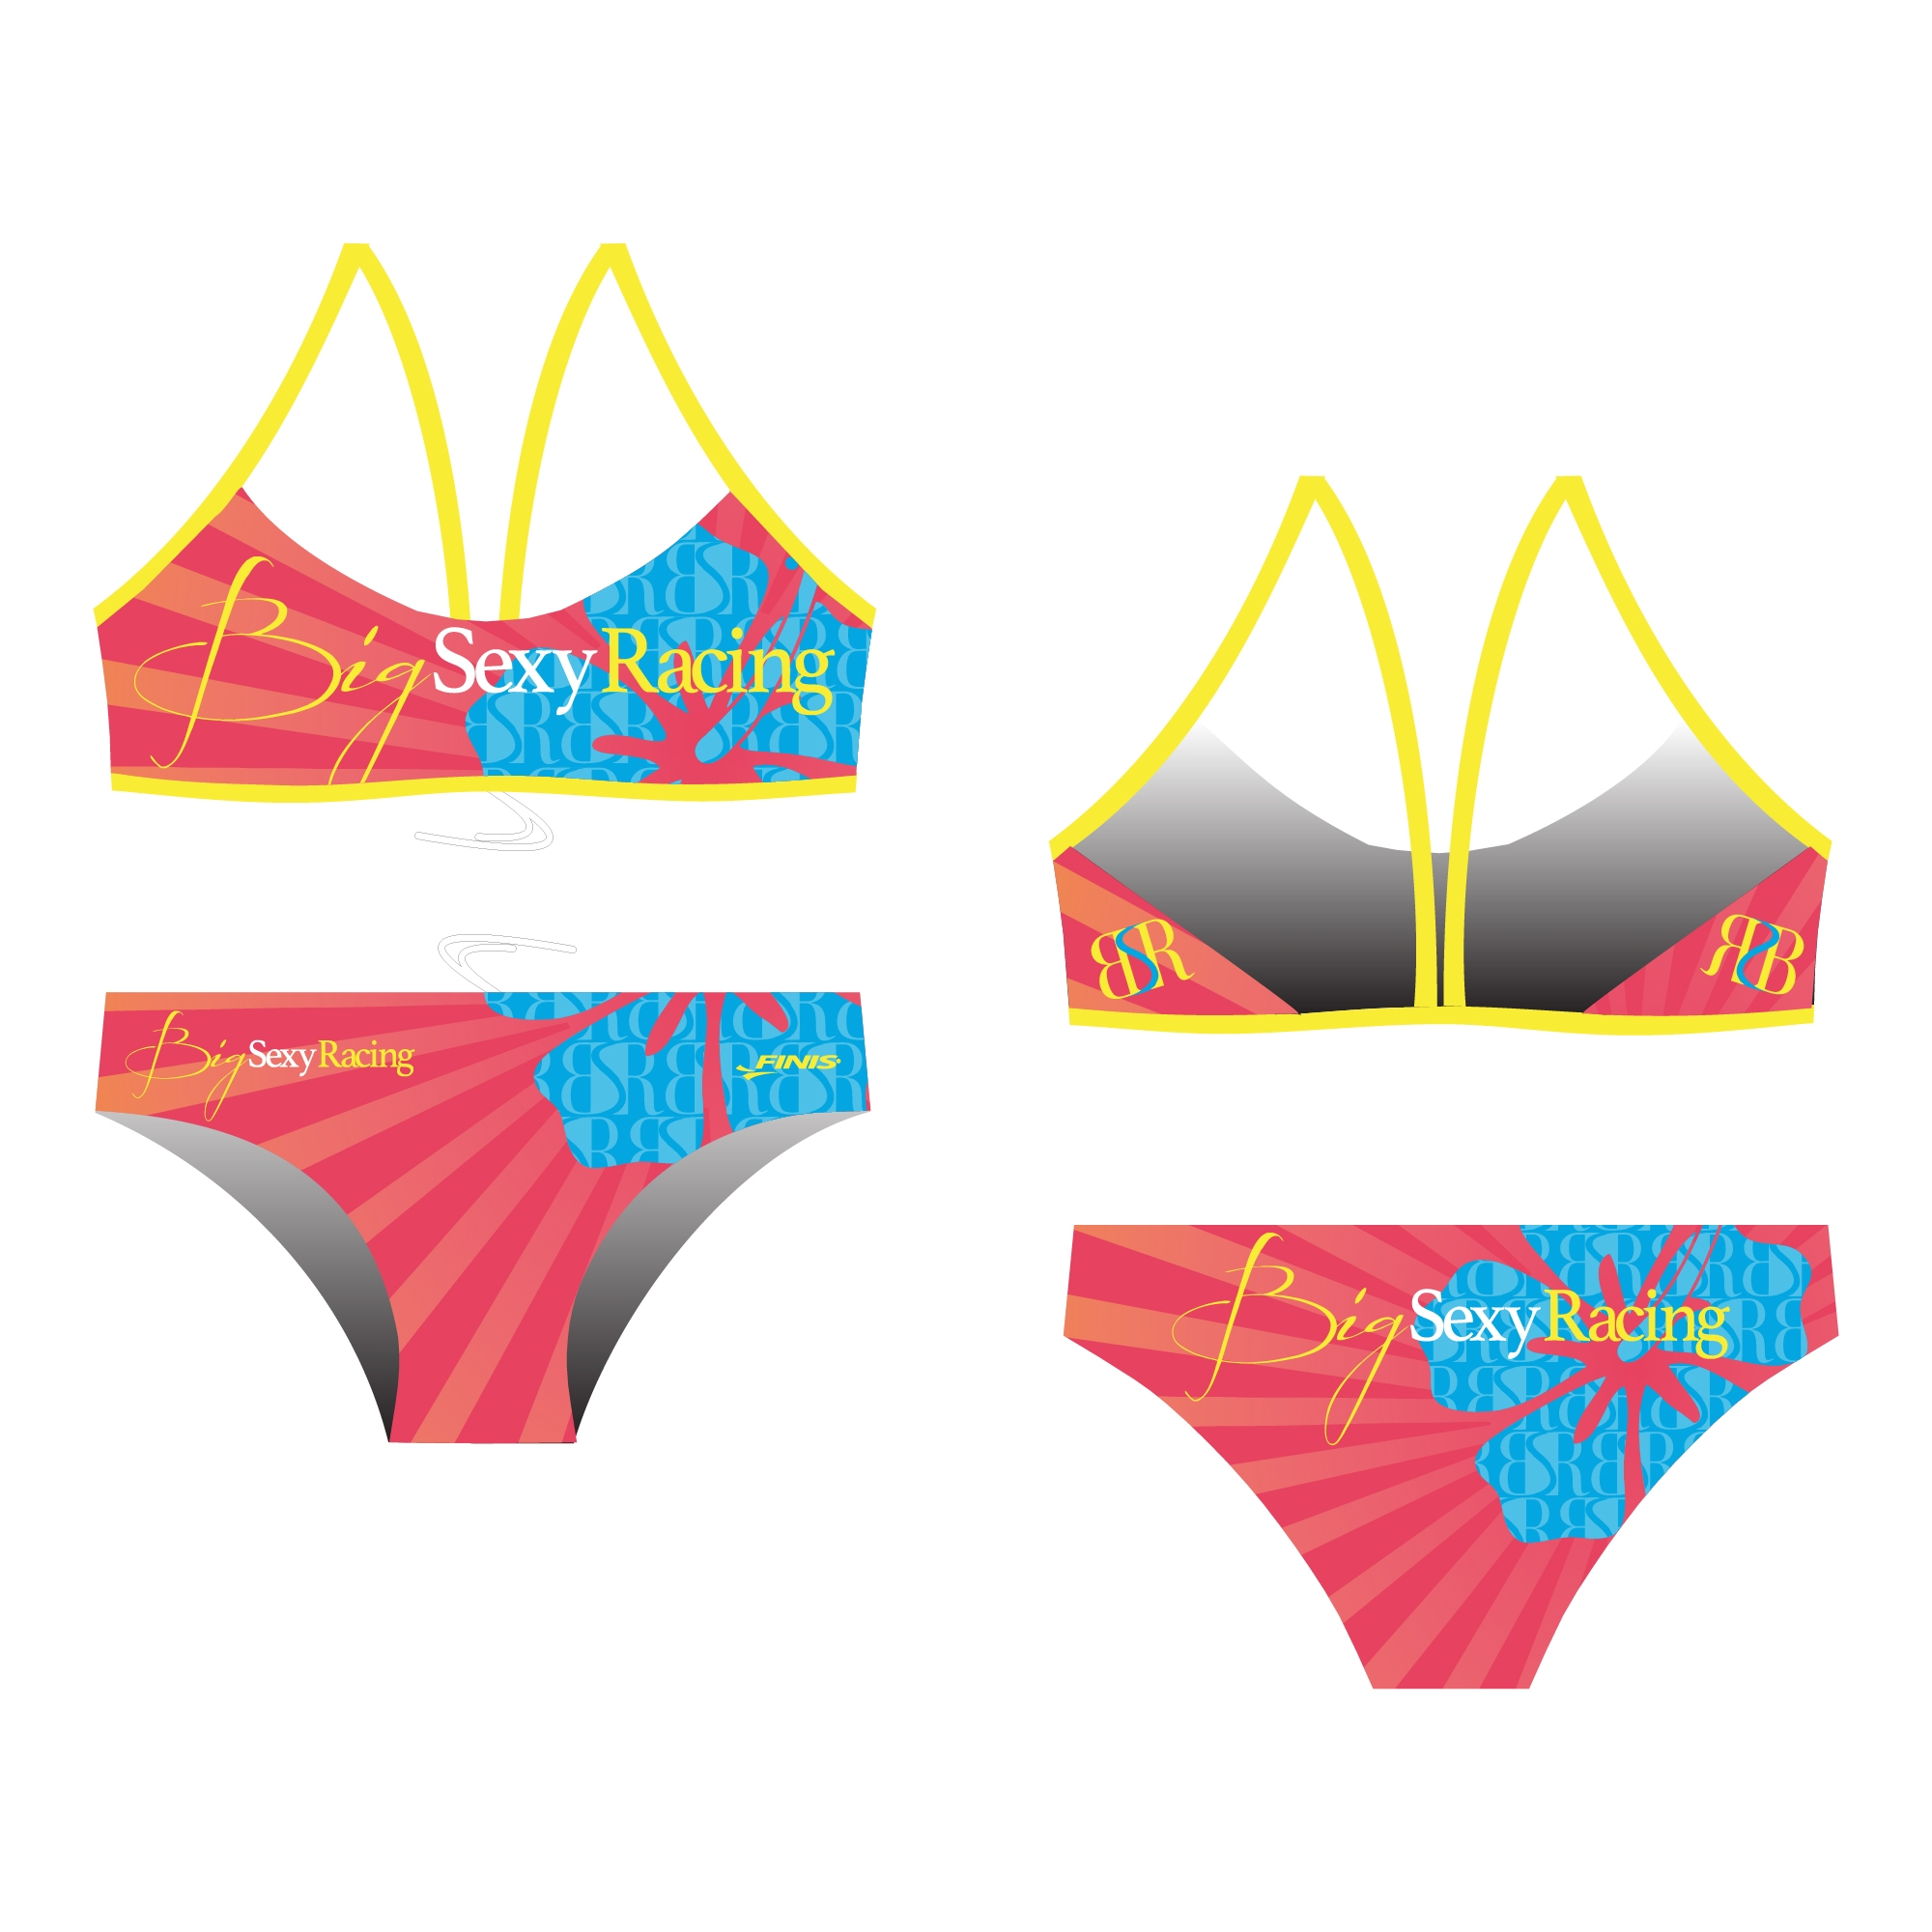 Big Sexy Racing swimming club custom finis bikini open back proof with a haiwaian flower.